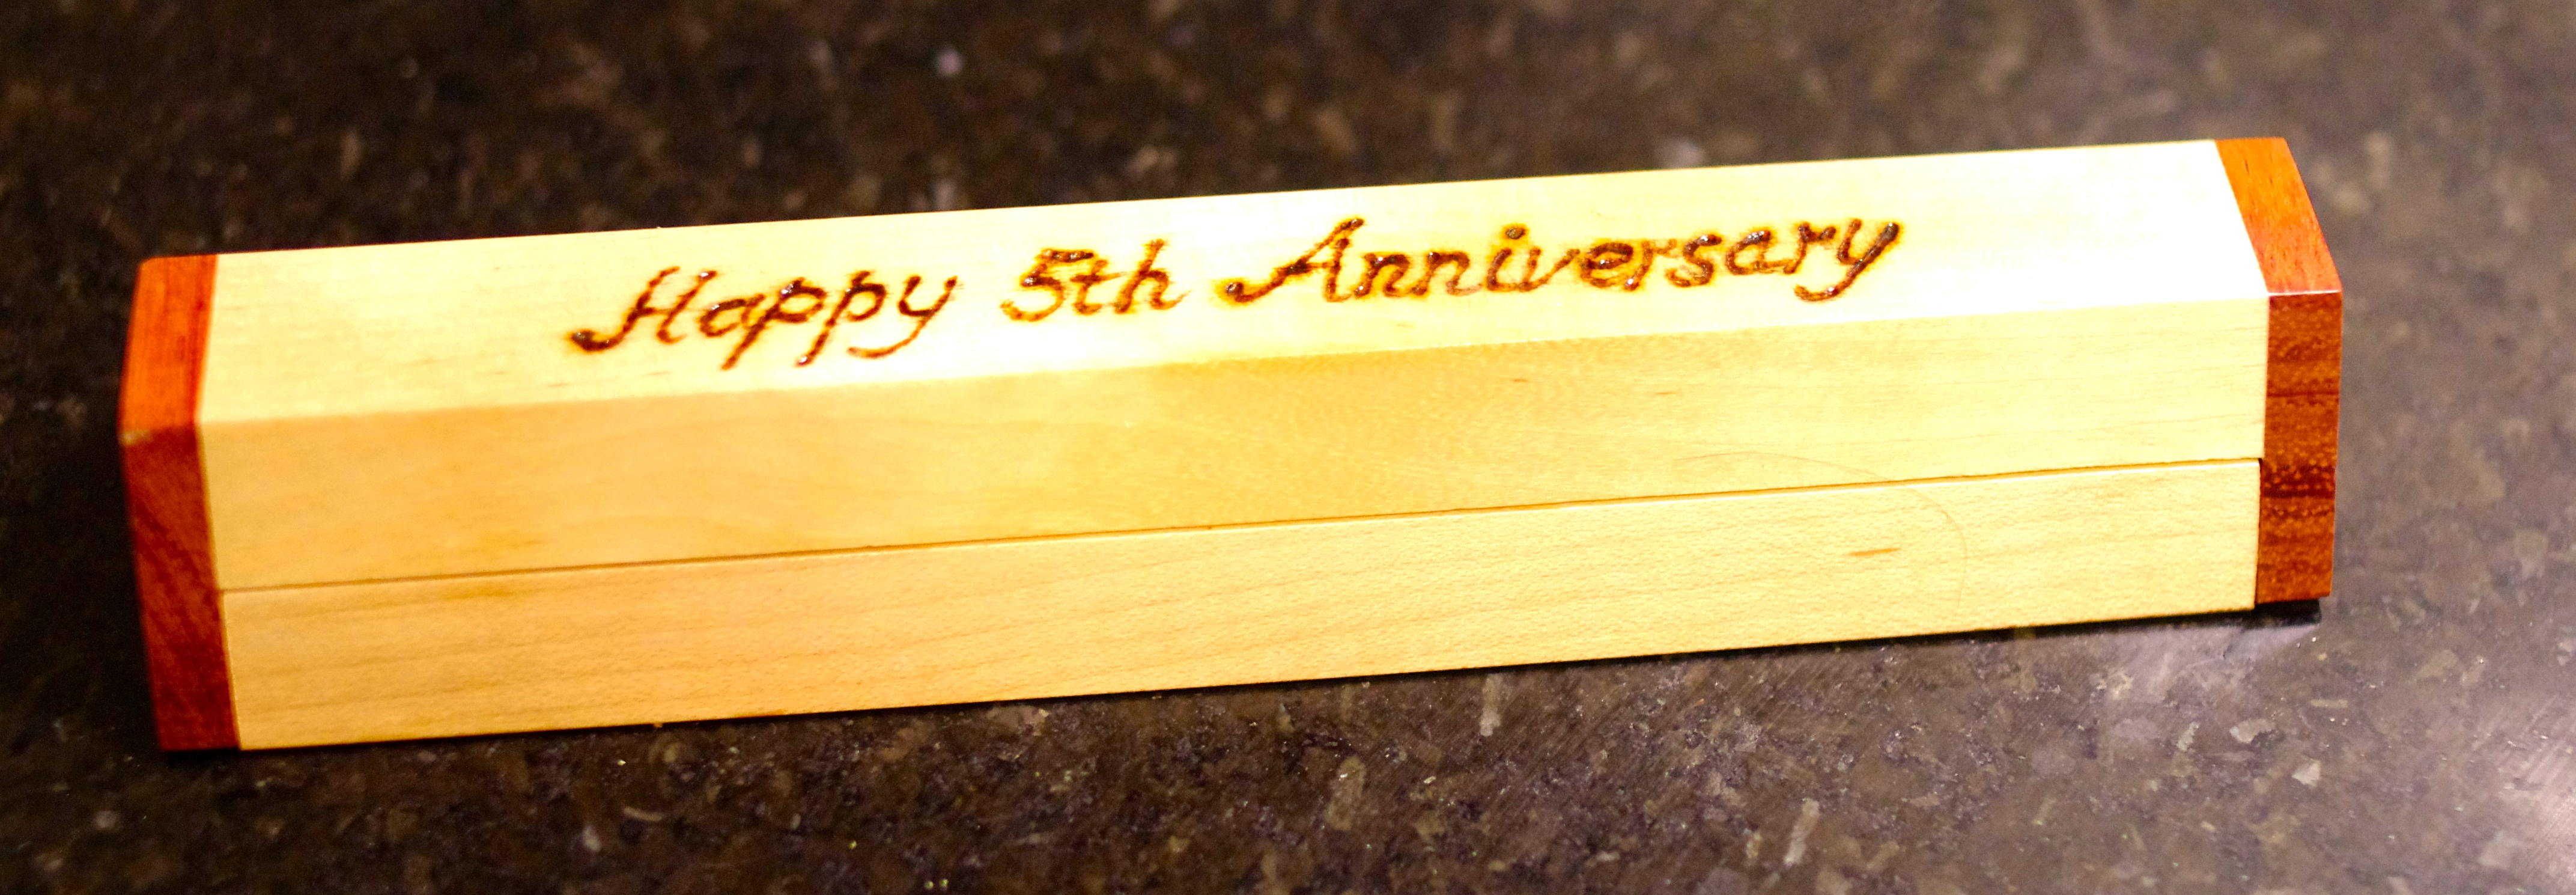 Ideas For 5th Wedding Anniversary Gifts For Husband : In My KitchenSeptember 2014 SurreyKitchen